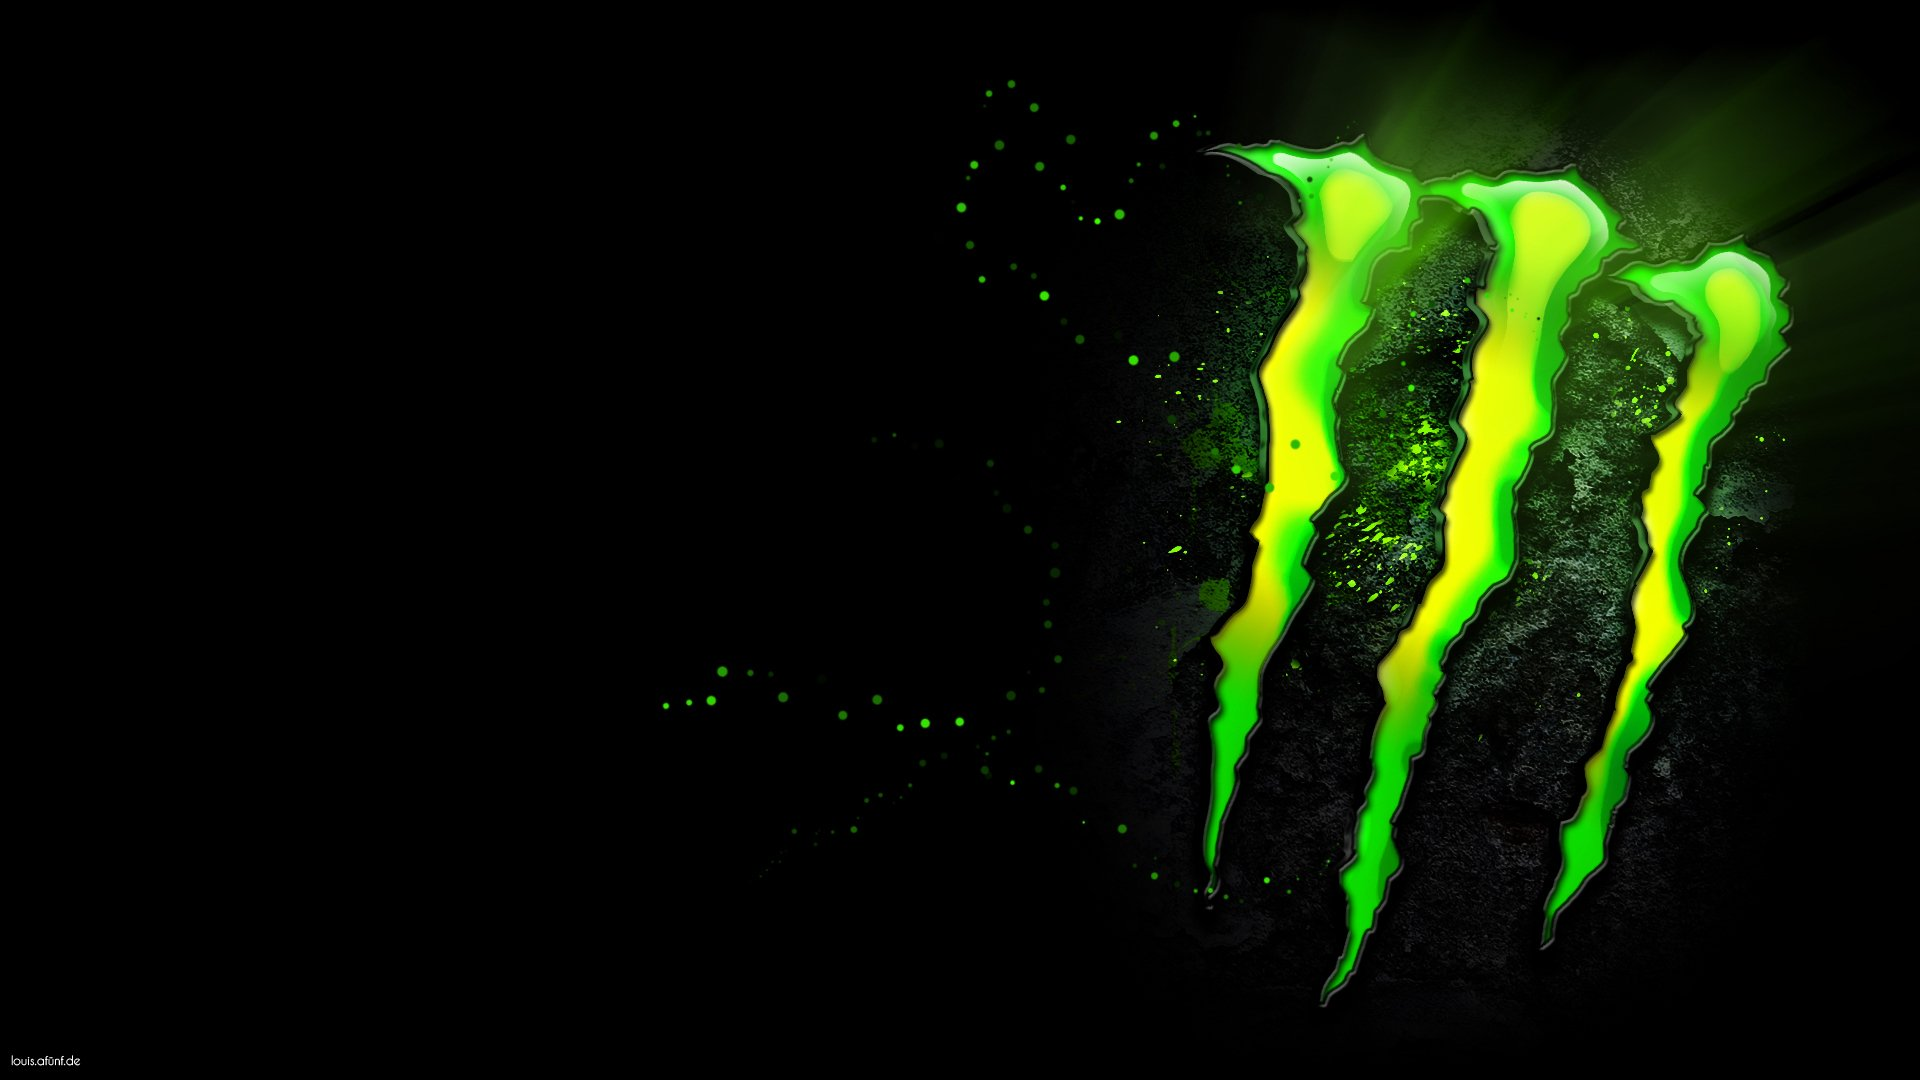 Monster hd wallpaper background image 1920x1080 id 461037 wallpaper abyss - Monster energy wallpaper download ...